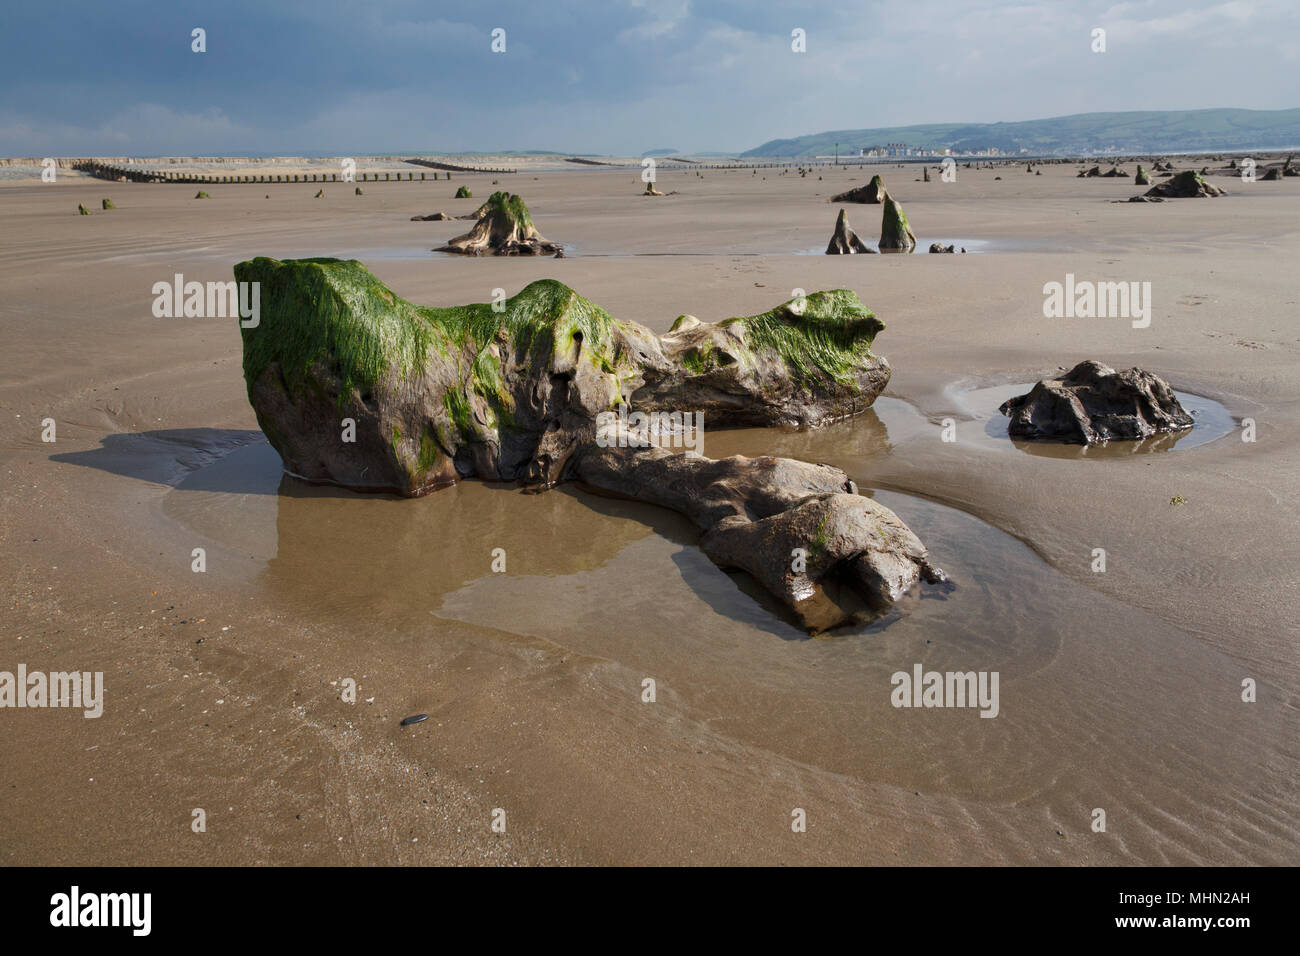 Prehistoric forest near Borth, Ceredigion, West Wales. In 2014 after storms stripped away sand revealing the ancient site, about 4.5 to 6K yrs old. - Stock Image